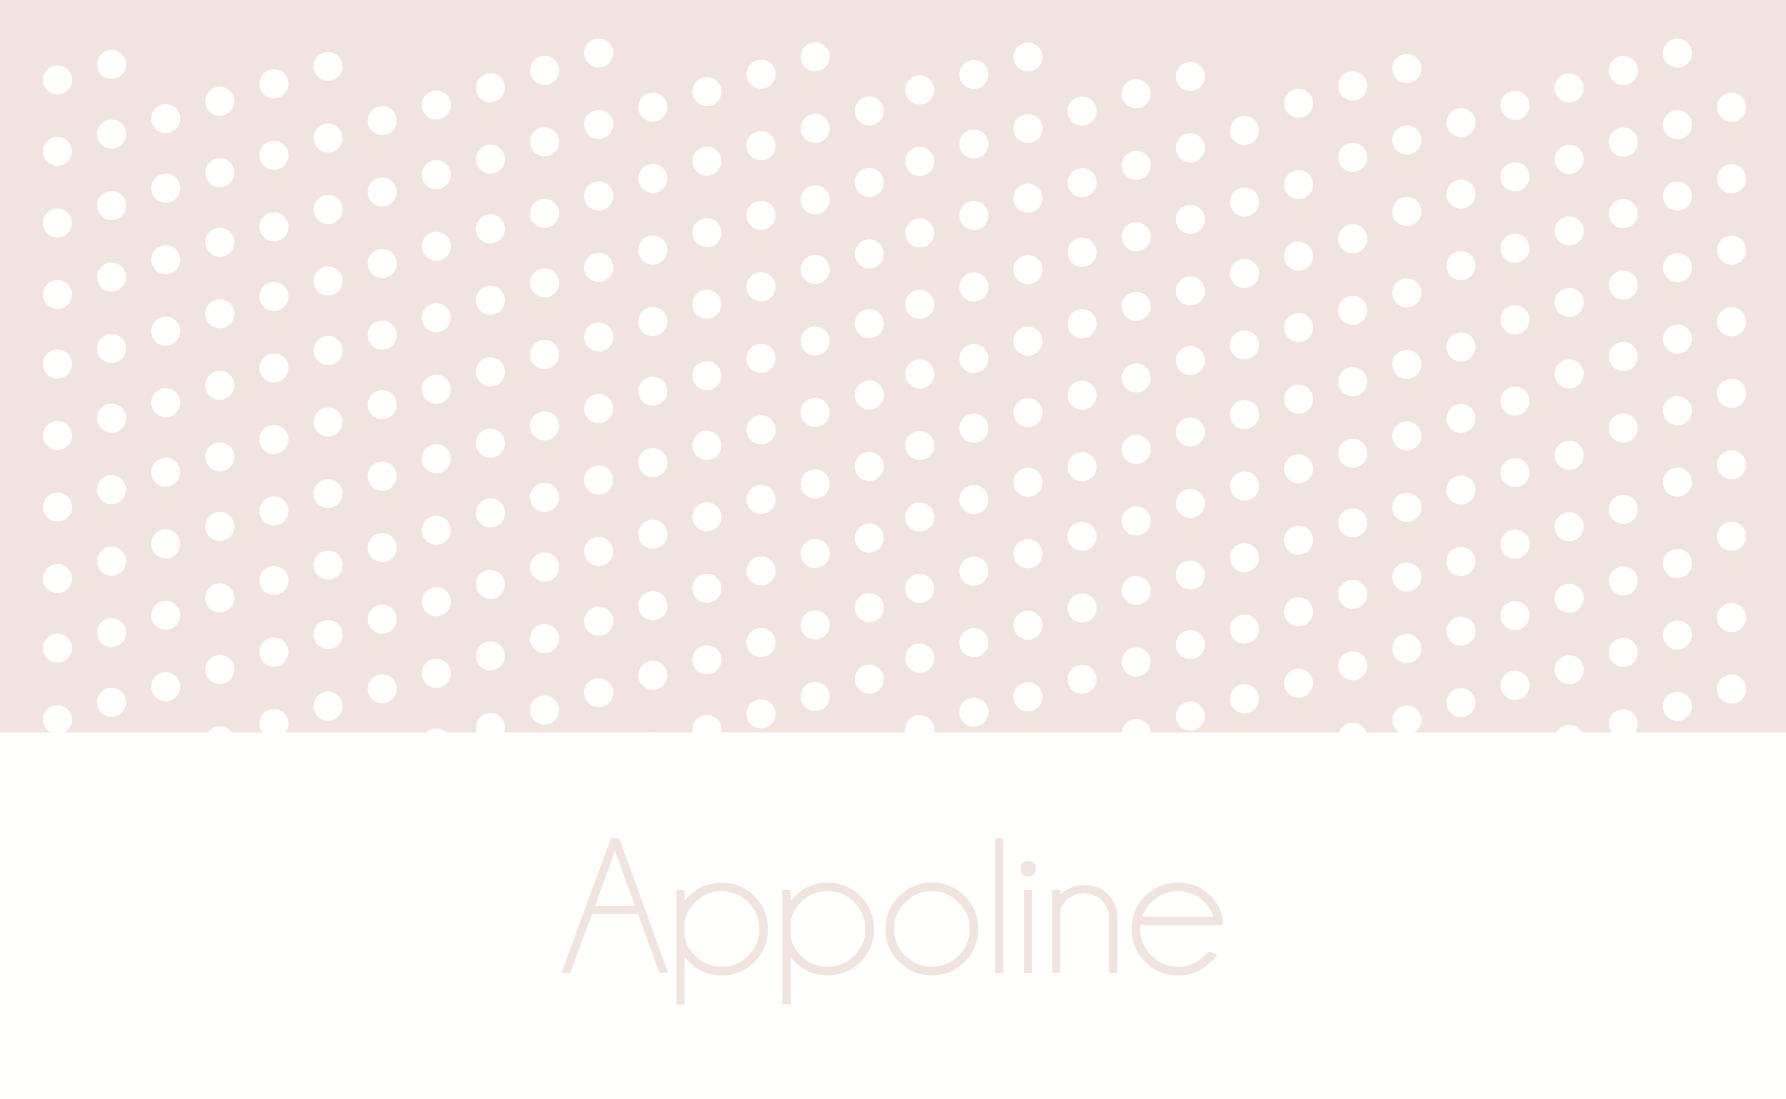 Appoline rectangulaire recto 1 rose.png